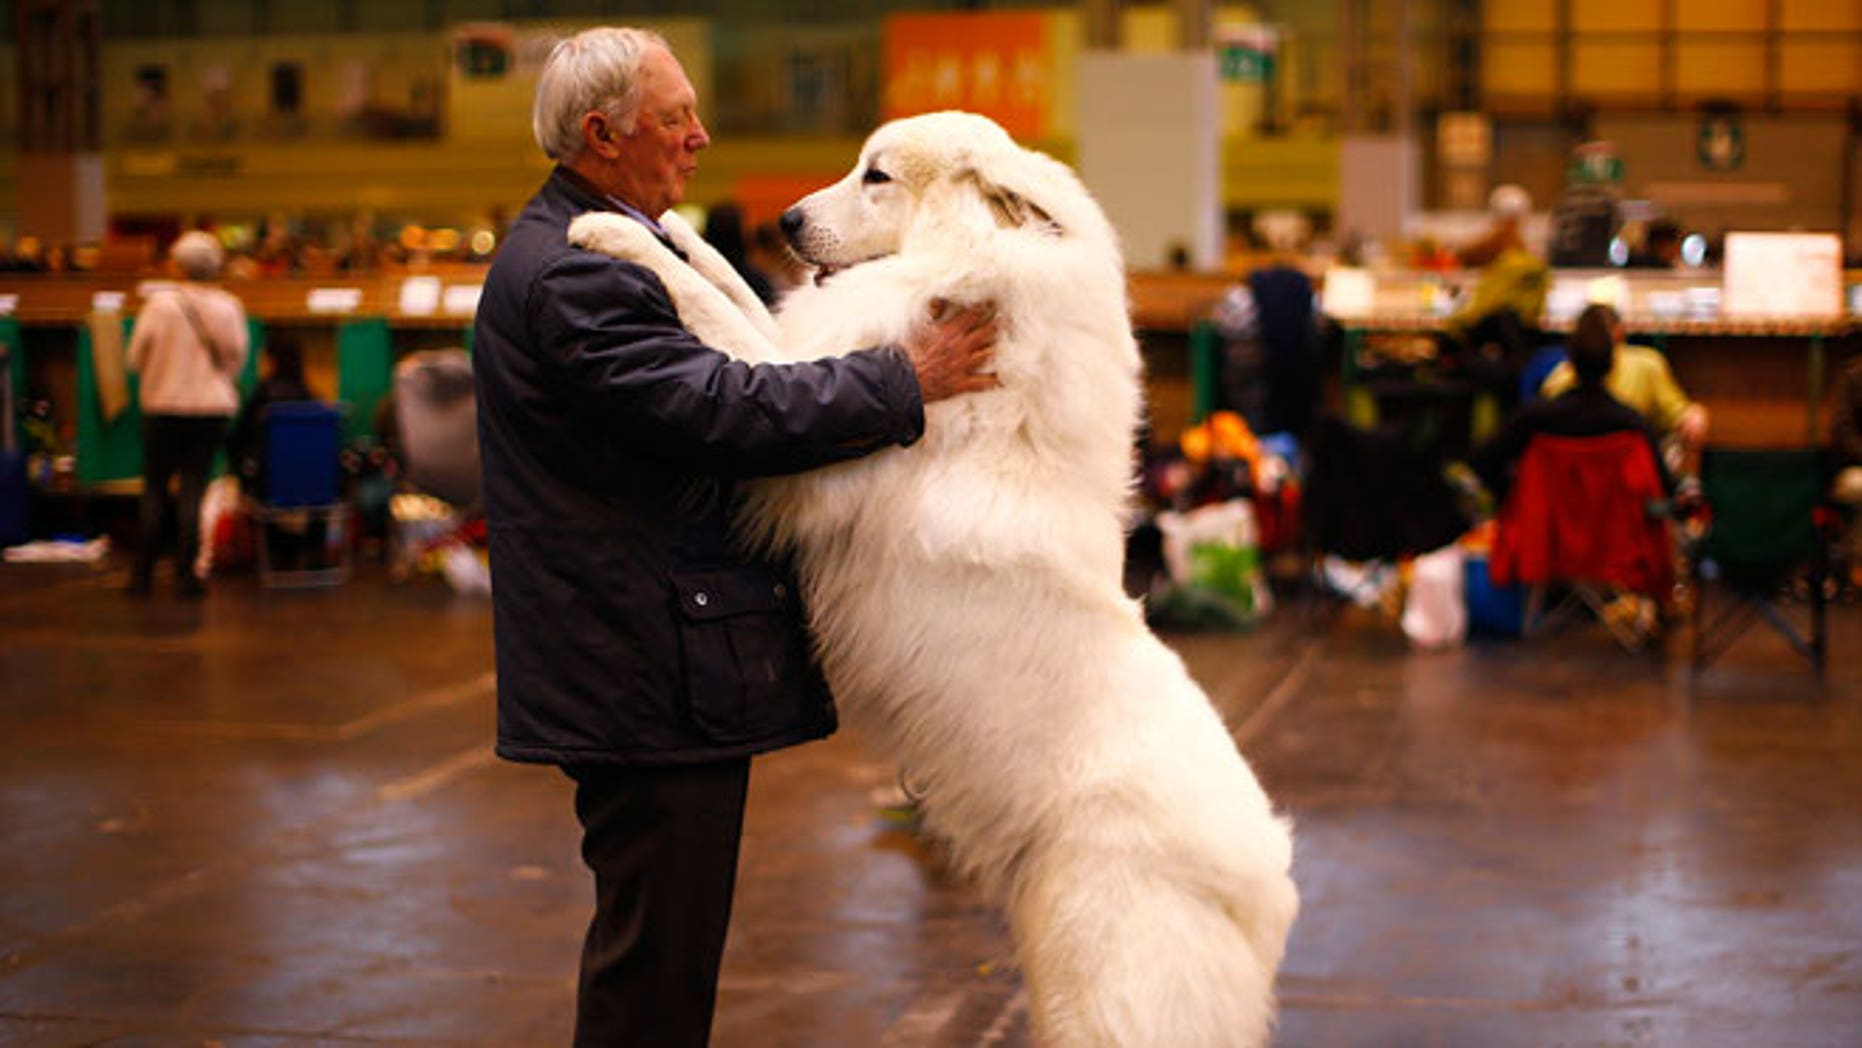 Arthur Ward stands with his Pyrenean Mountain Dog Cody during the first day of the Crufts Dog Show in Birmingham, central England, March 5, 2015.